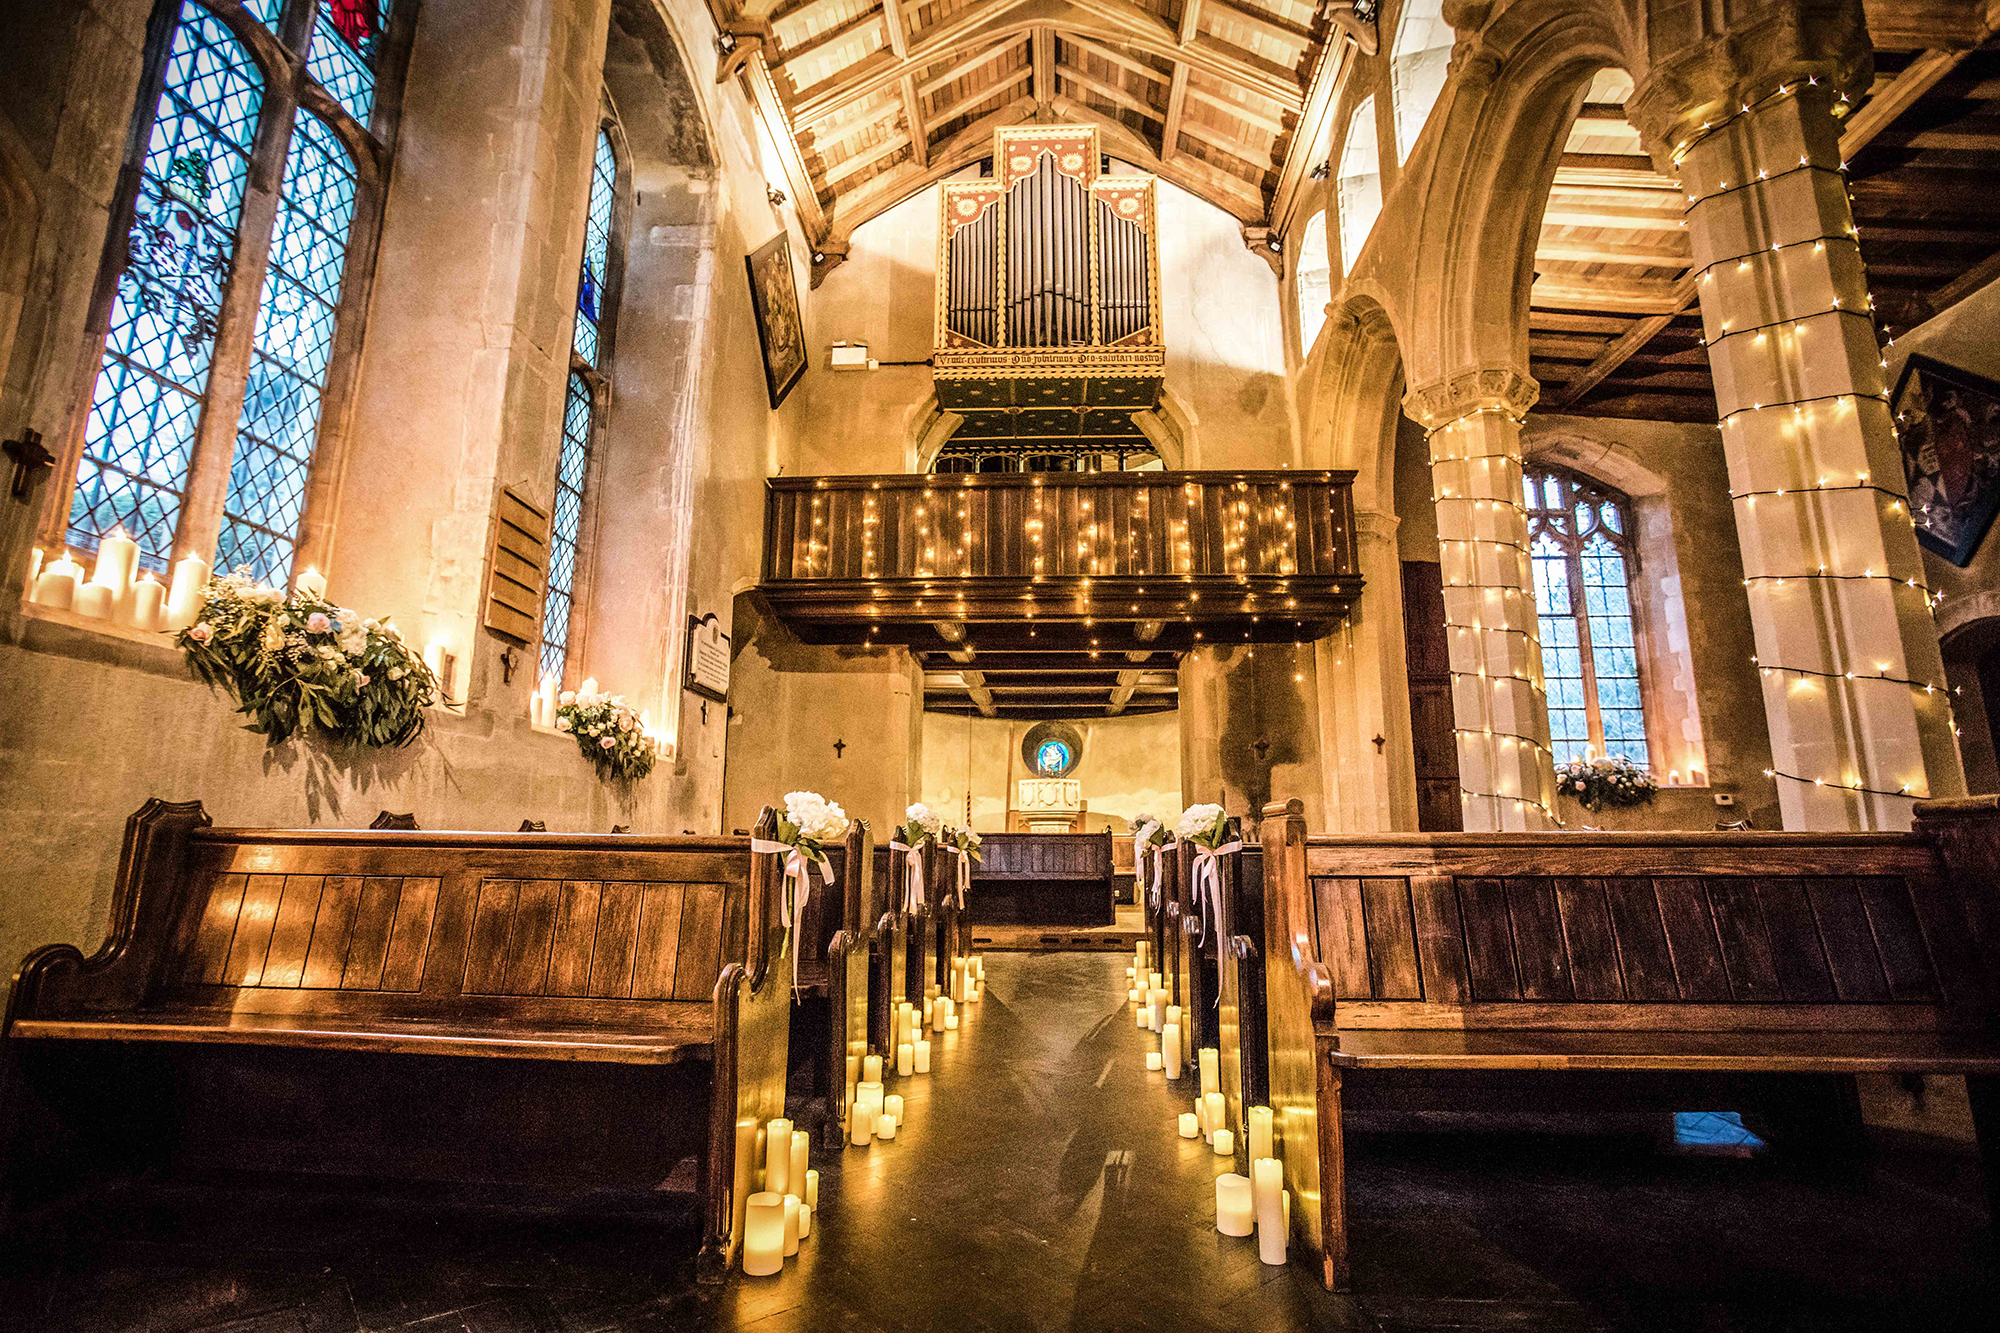 Inside of the Church of St John Latera in candlelight on the grounds of Hengrave Hall